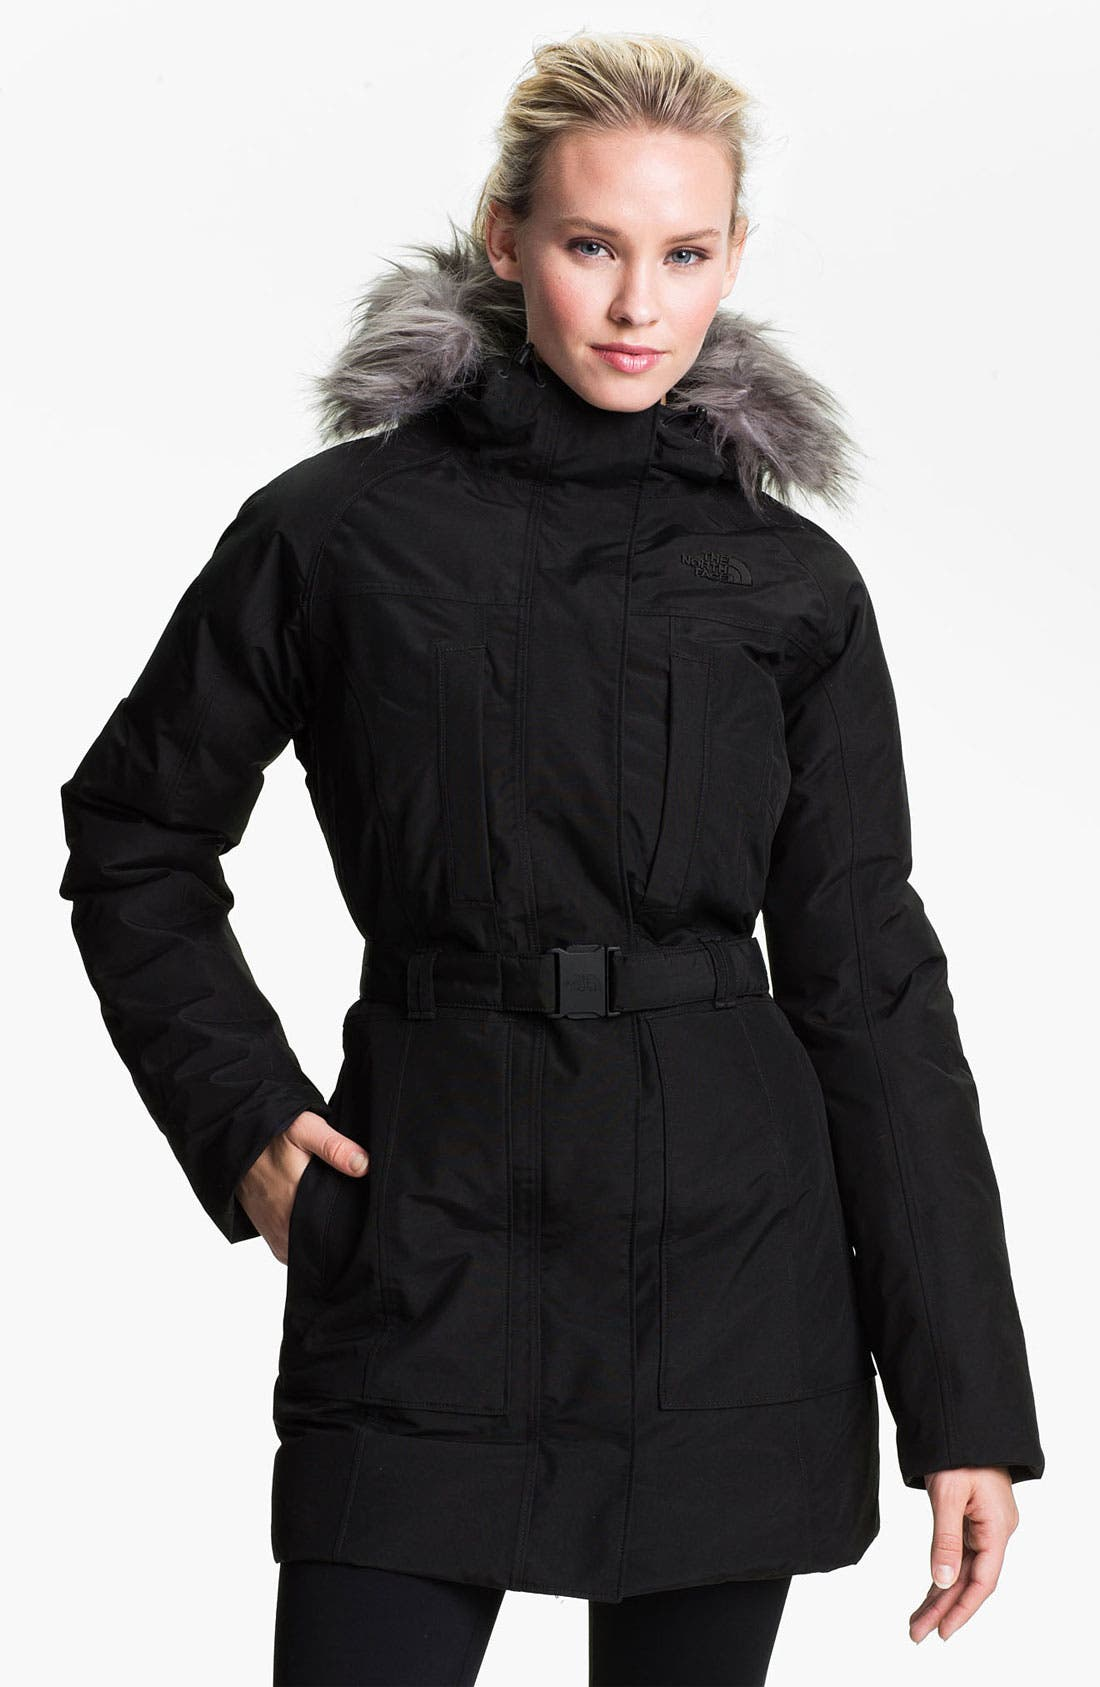 Alternate Image 1 Selected - The North Face 'Brooklyn' Down Jacket